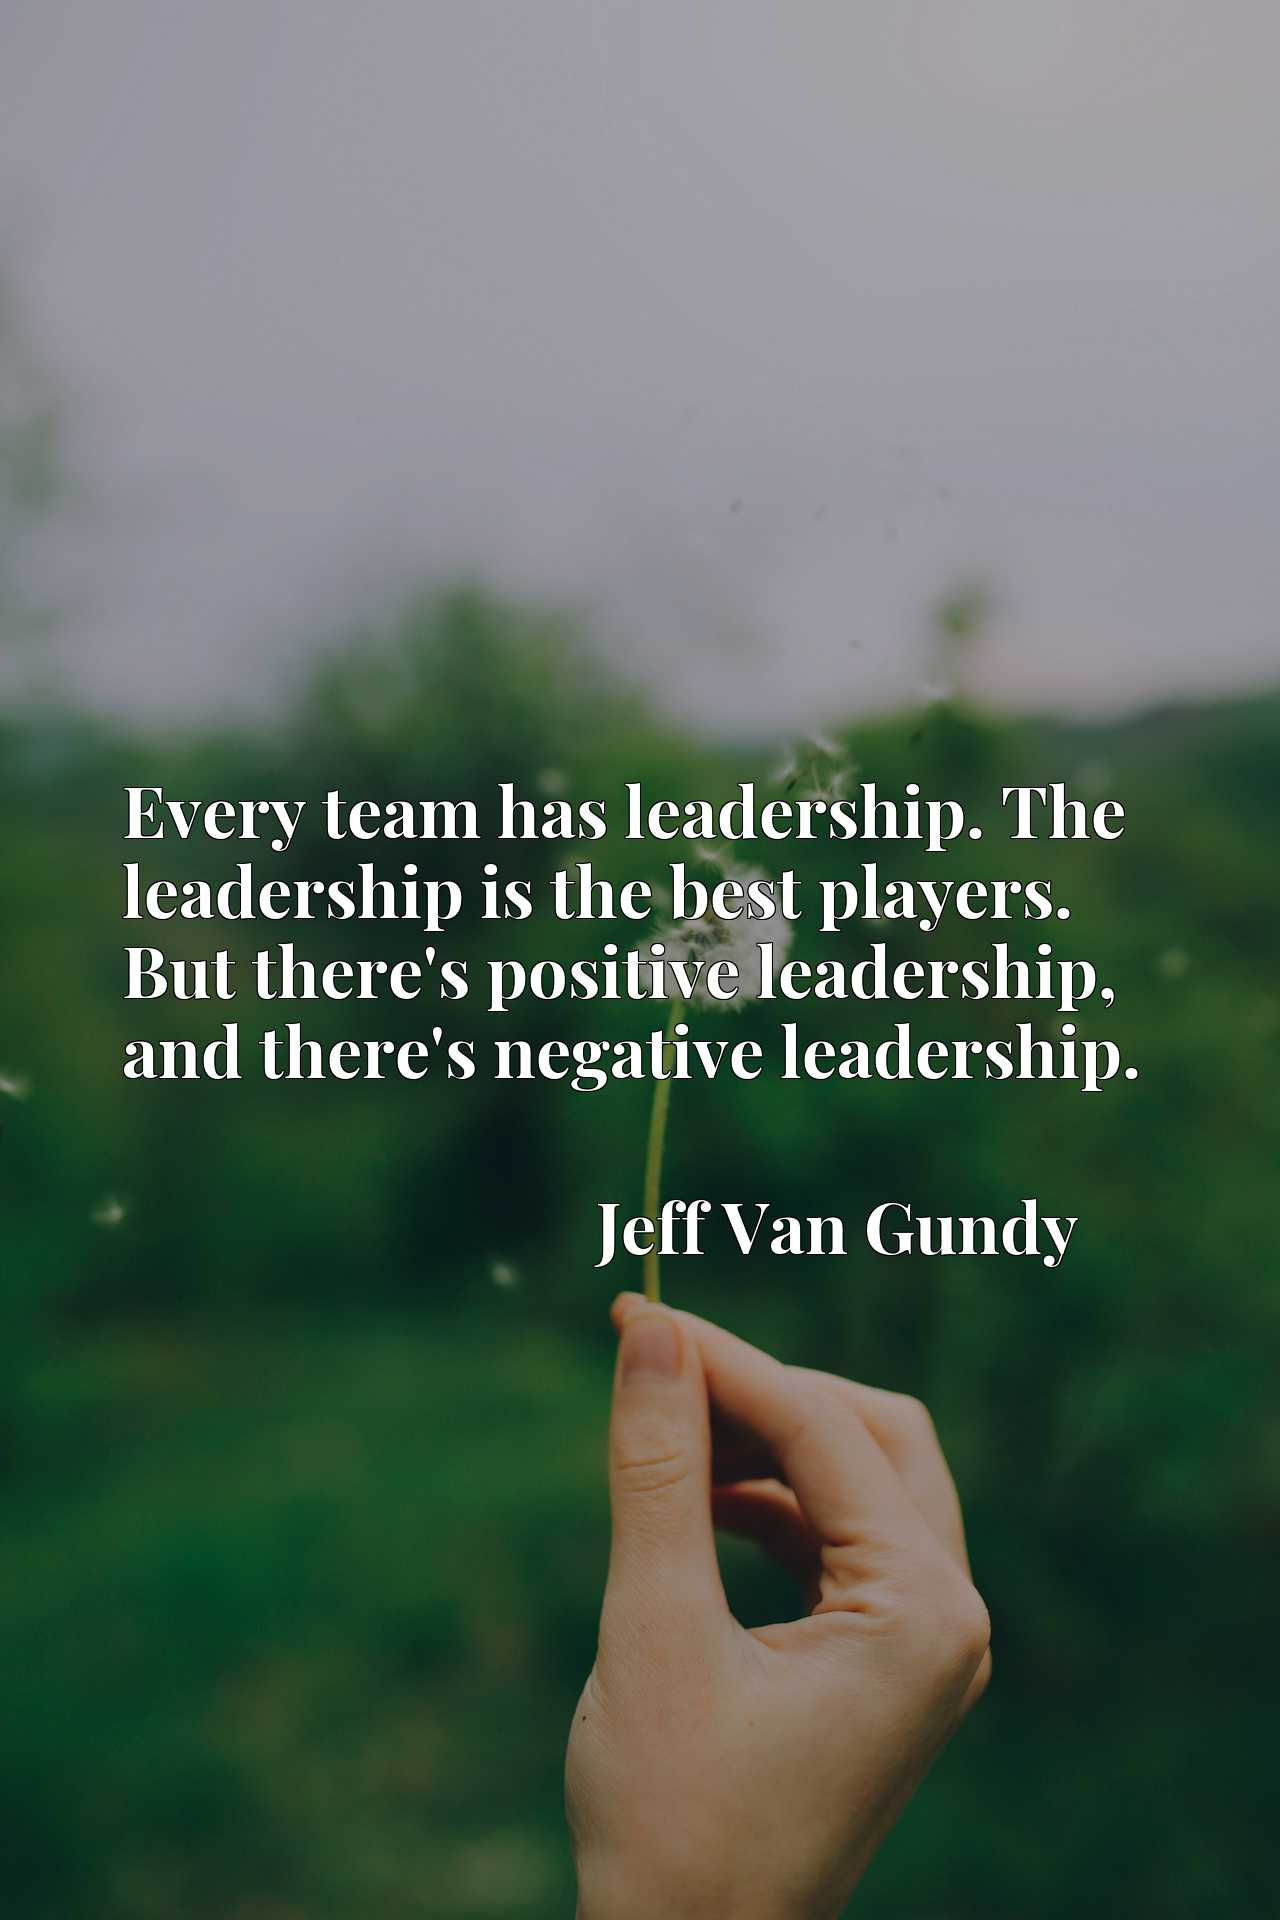 Quote Picture :Every team has leadership. The leadership is the best players. But there's positive leadership, and there's negative leadership.